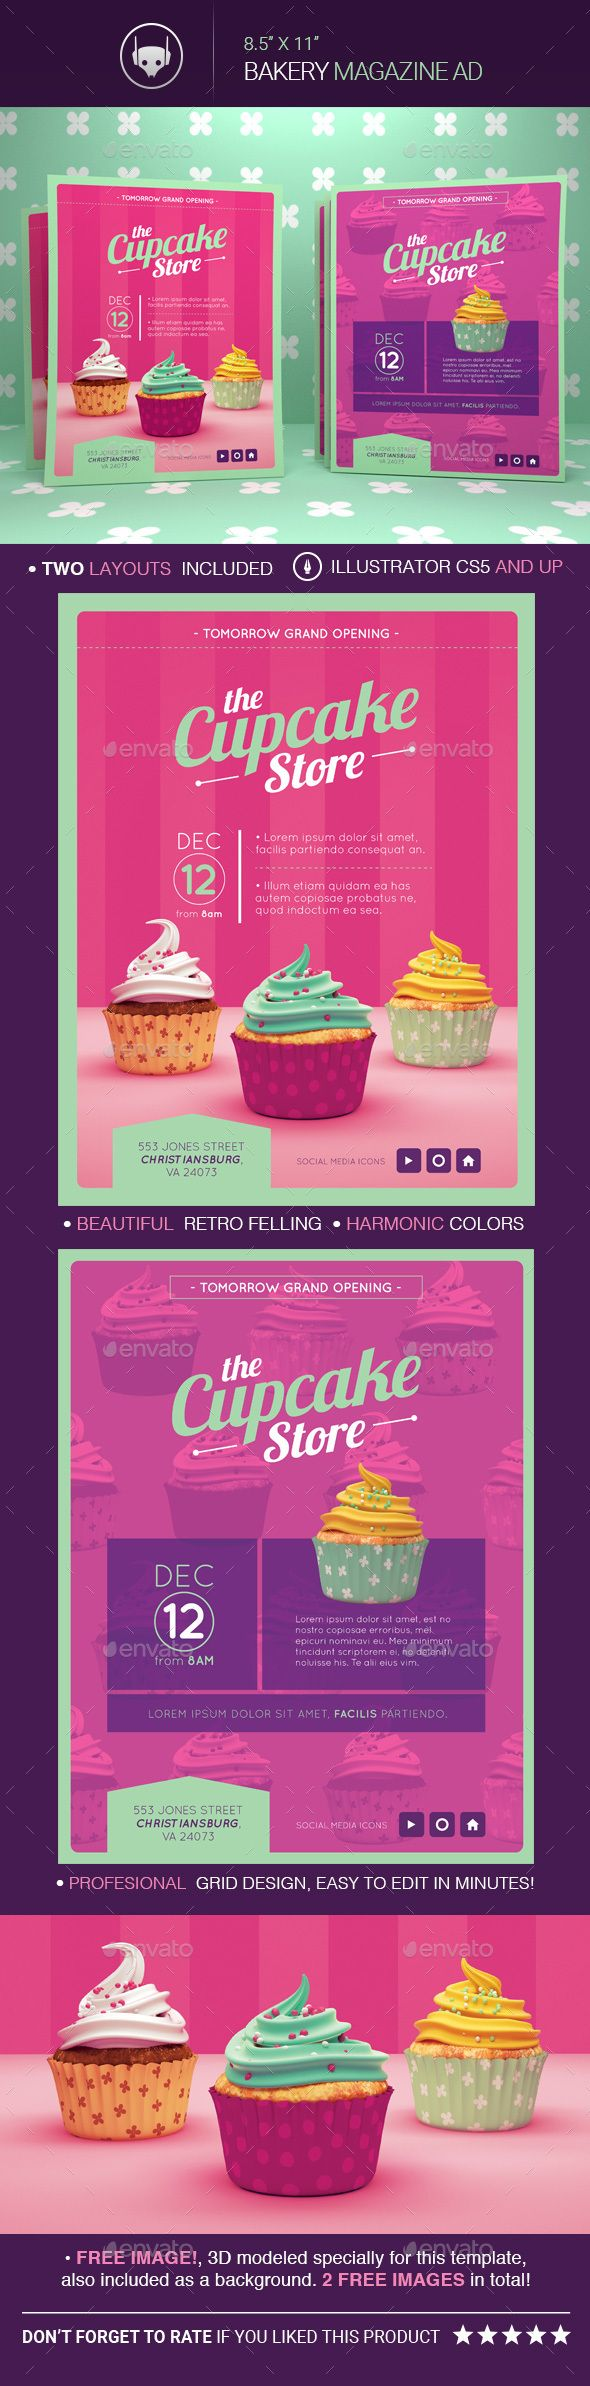 17 best ideas about advertisement template wedding vintage bakery magazine advertising templates